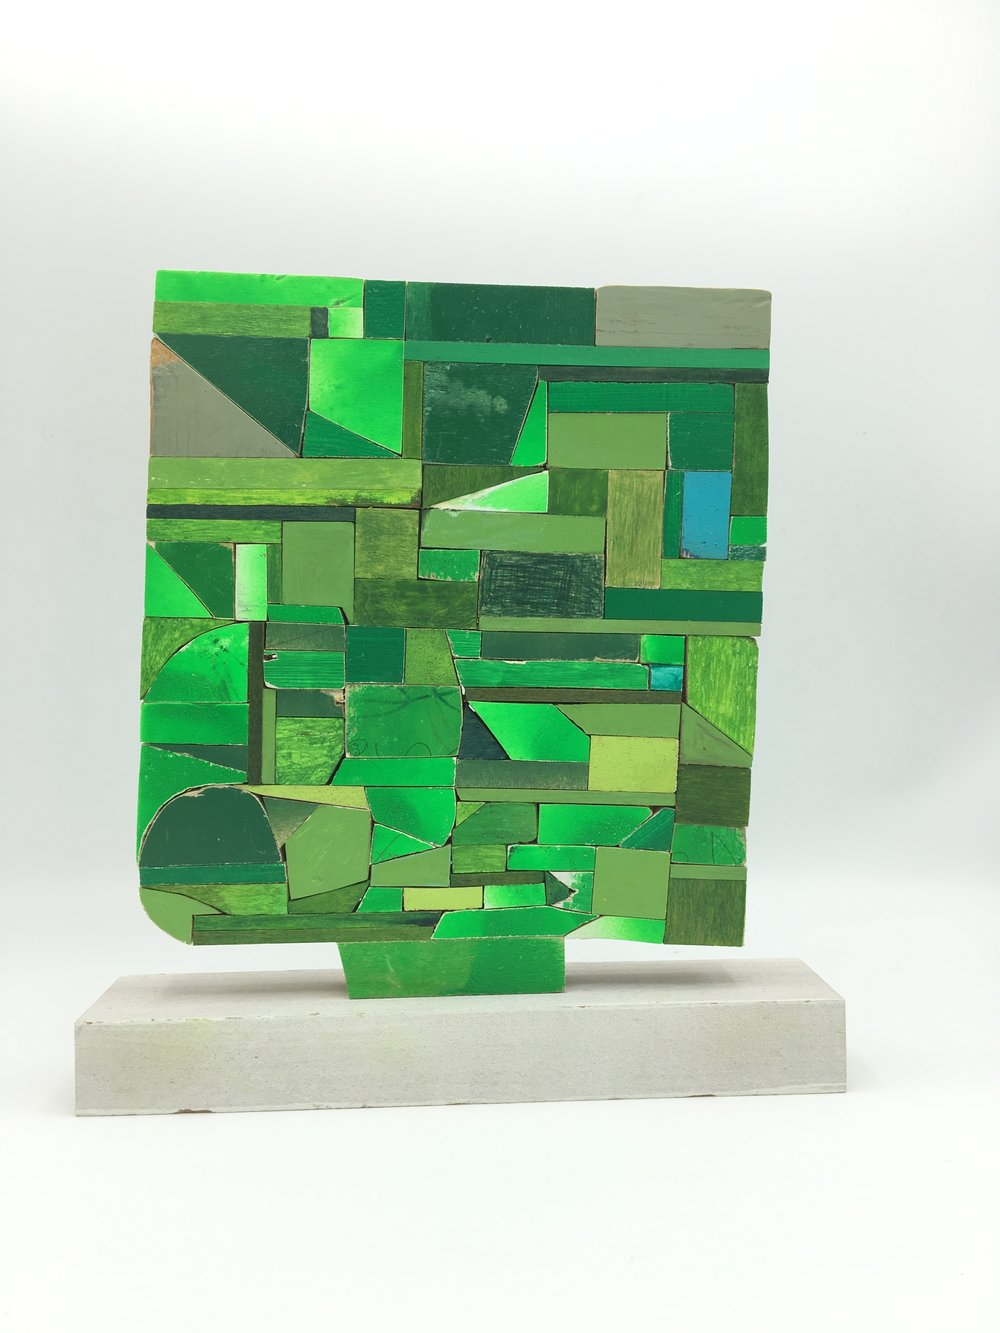 Green One, 2016 Wood, Paint, Colored Pencil, Glue 10 x 9 x 2 in.